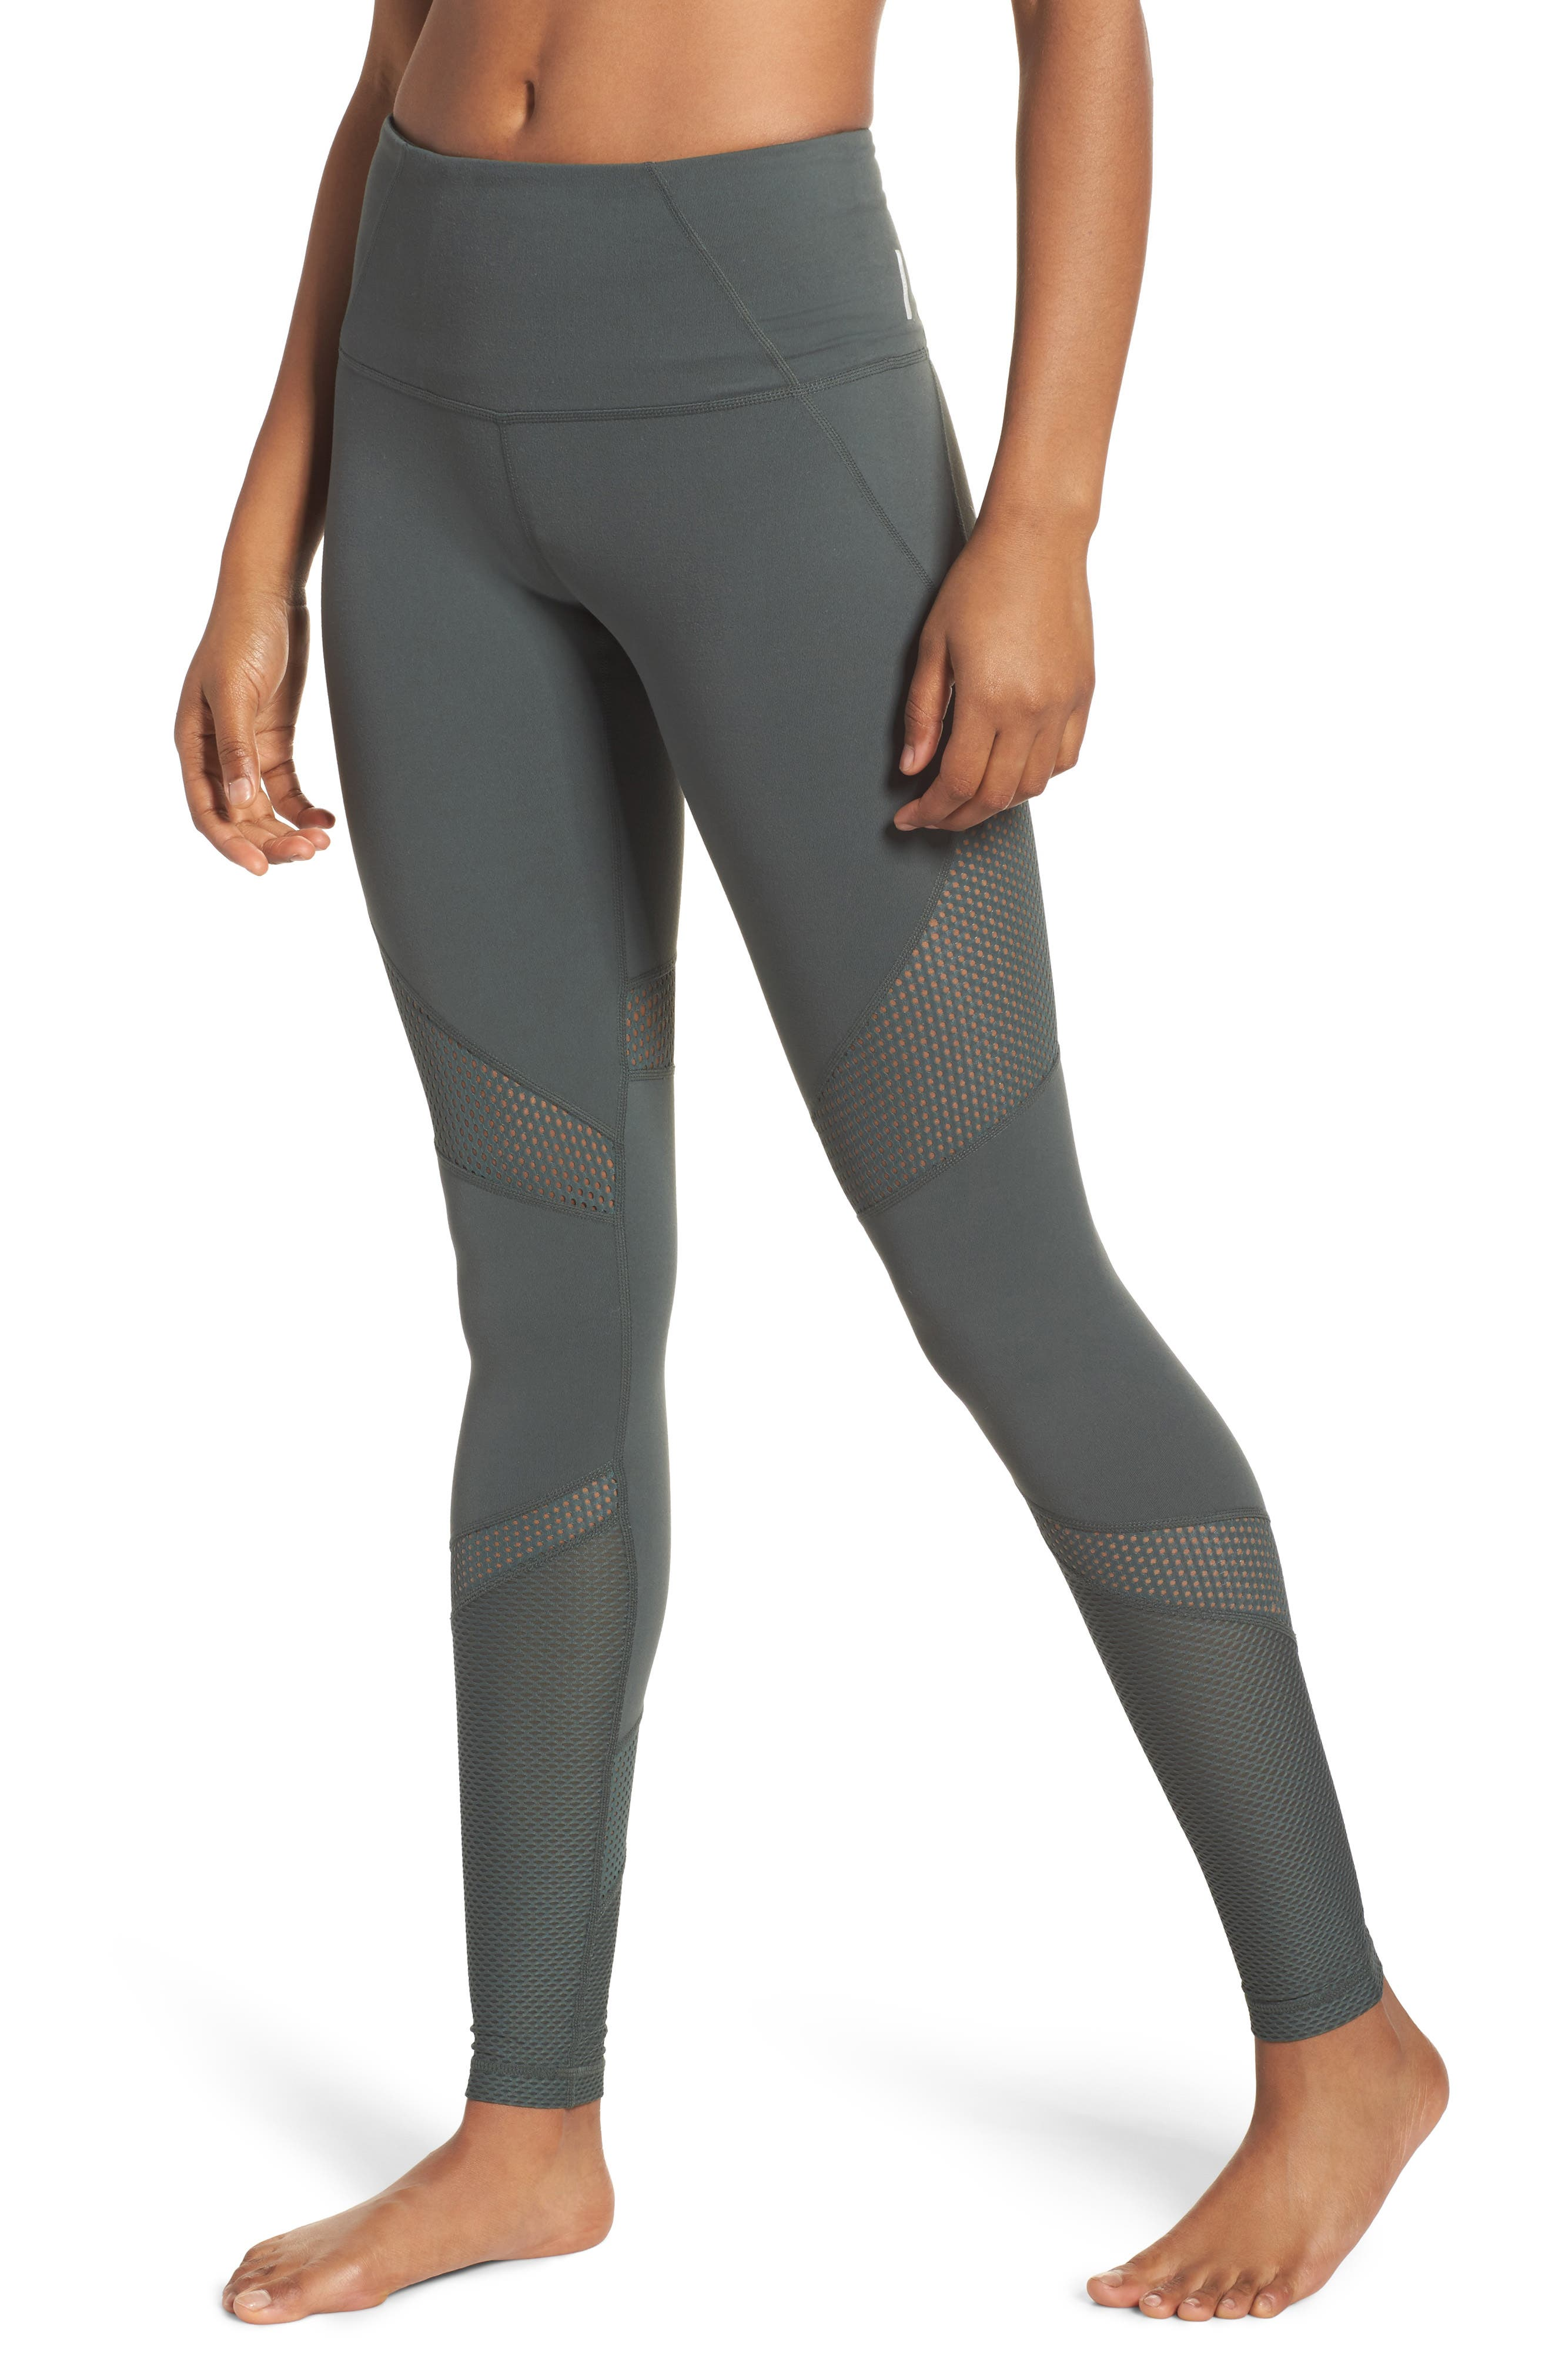 Main Image - Zella Out of Bounds High Waist Leggings